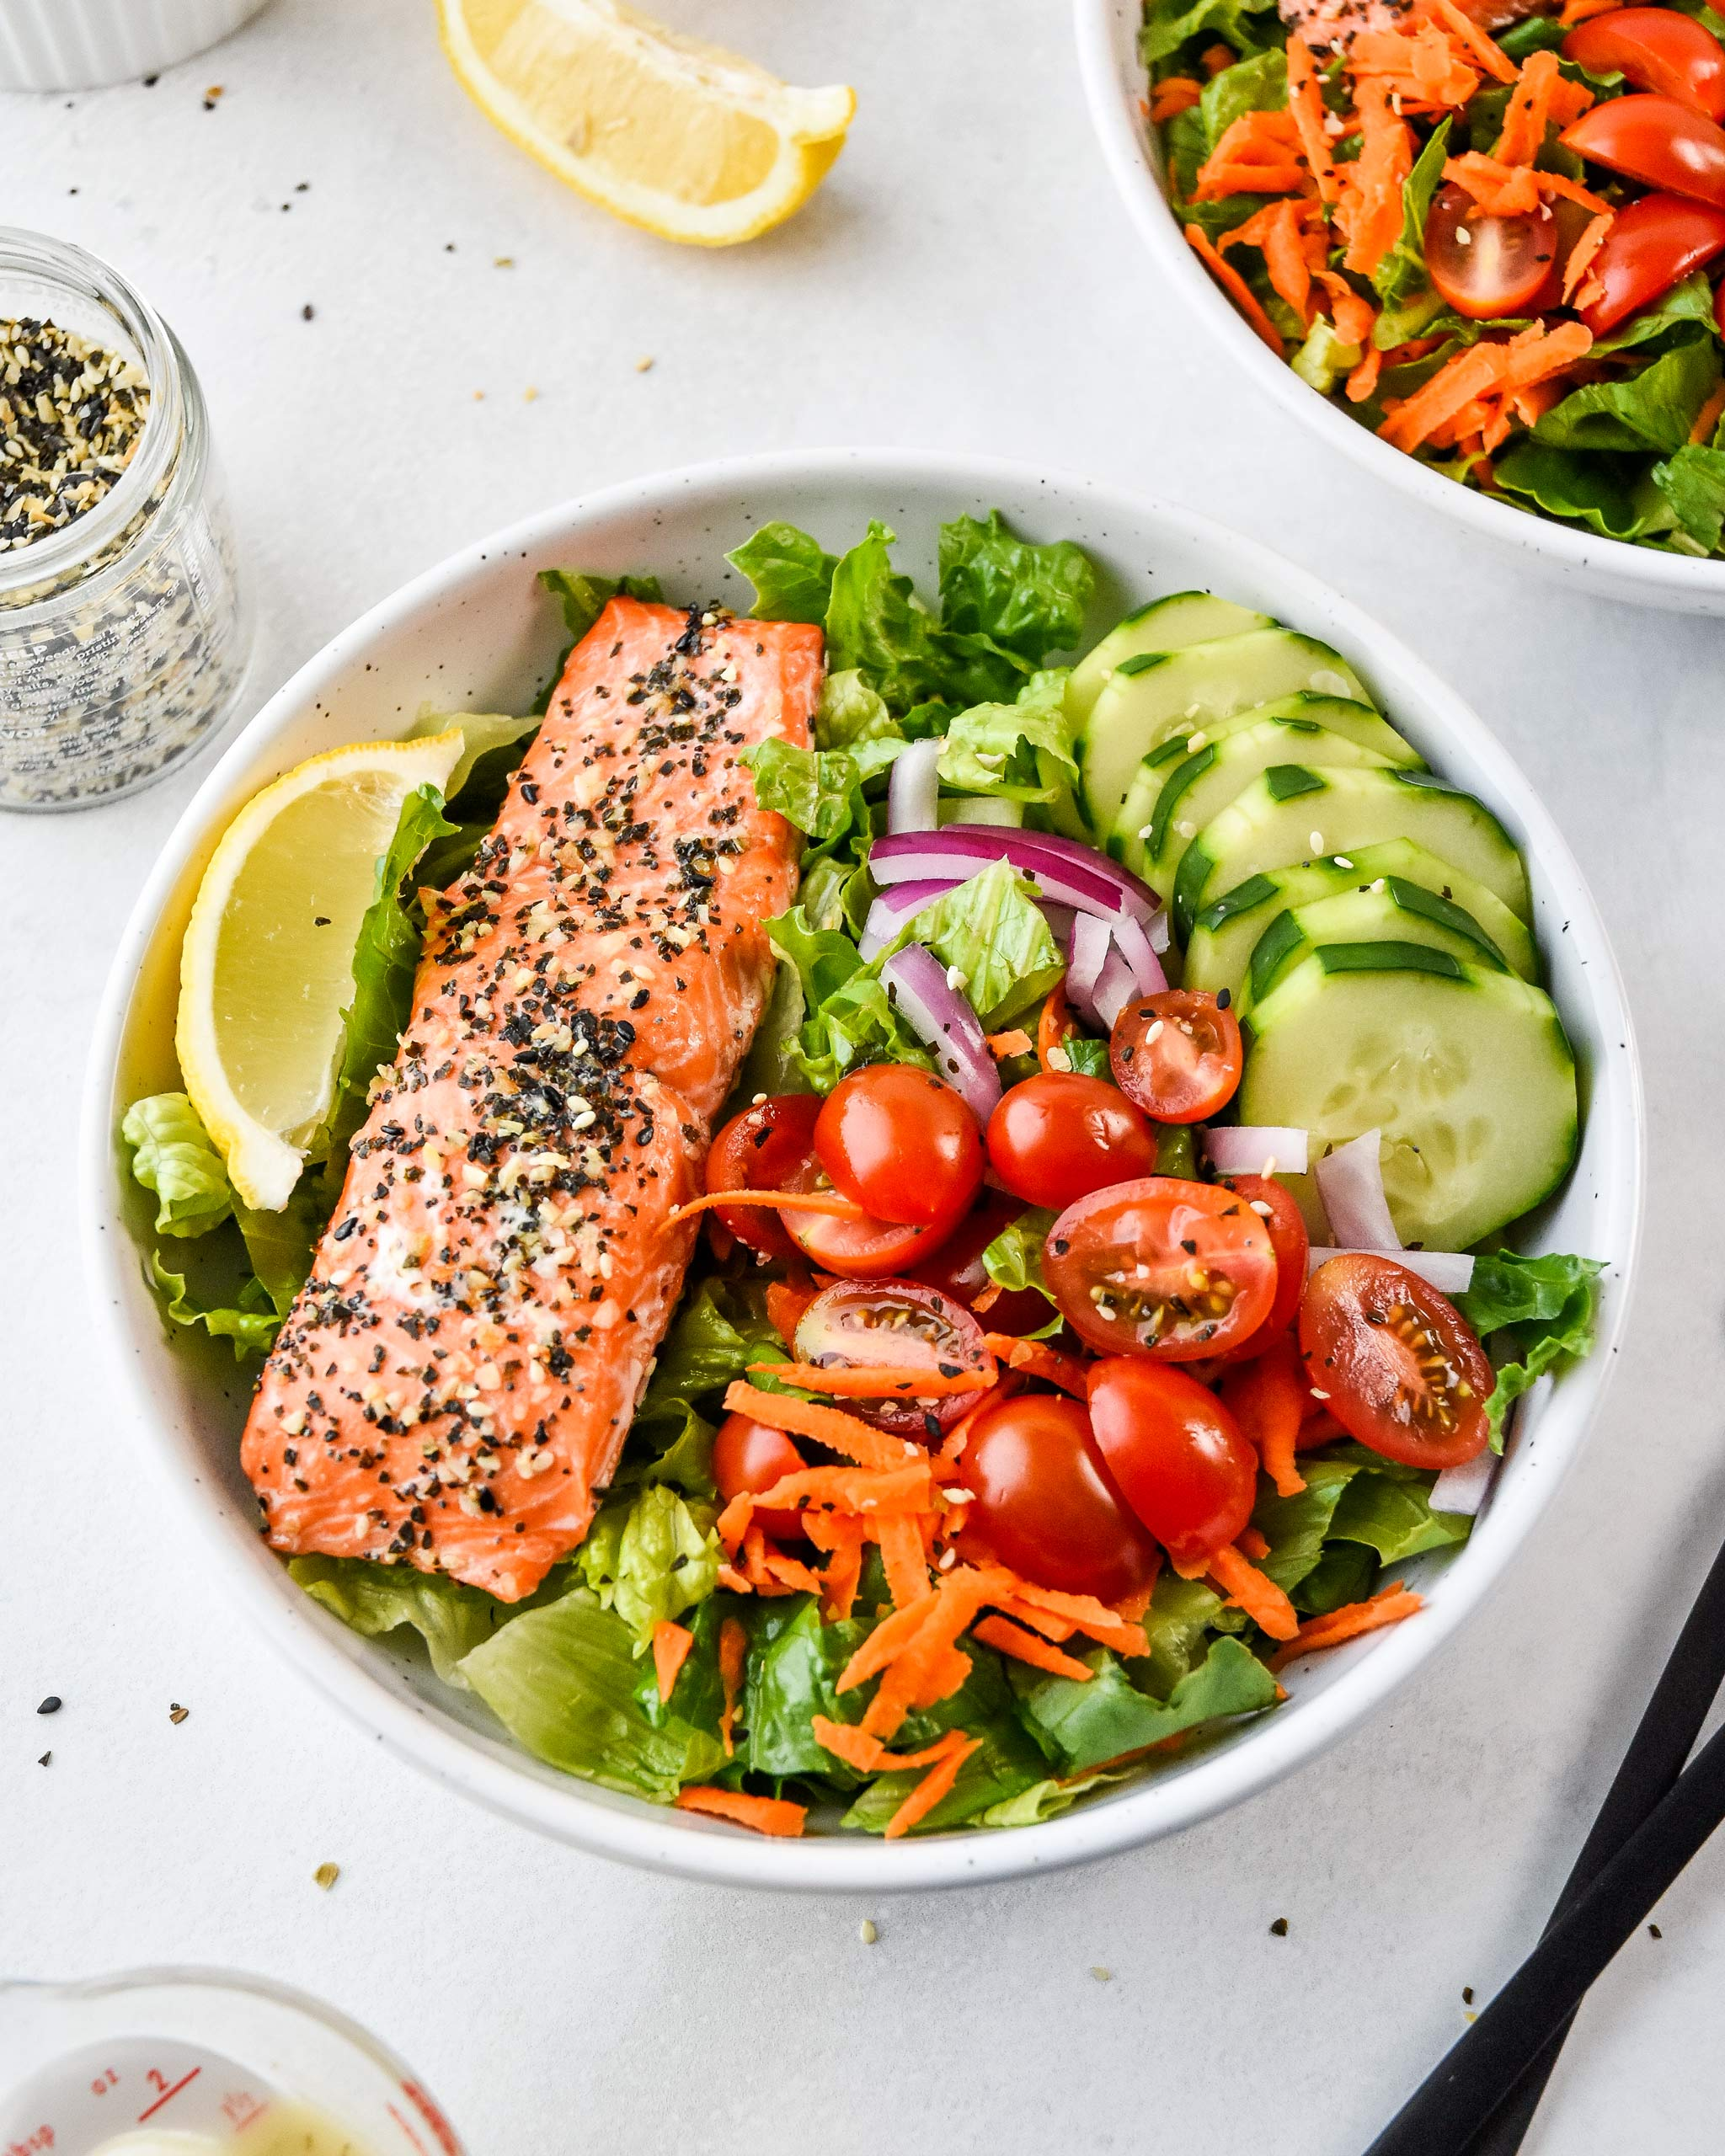 Everything Bagel Salmon Salad Bowls feature baked salmon with everything but the bagel seasoning and lots of veggies